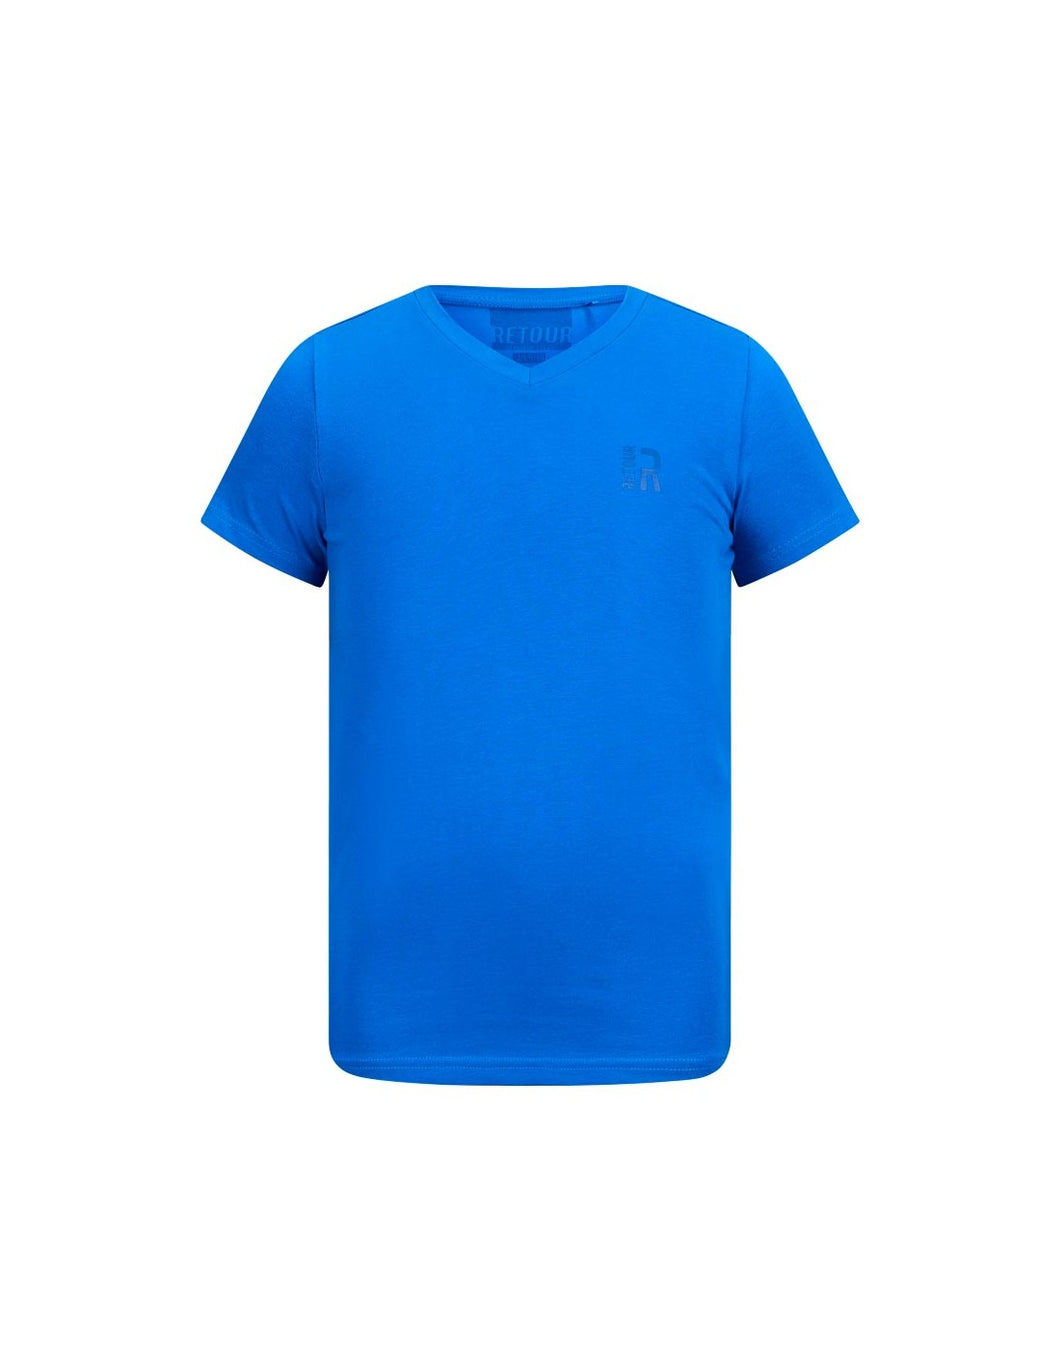 Retour Jeans Sean T-Shirt RJB-03-220 5053 Electric Blue